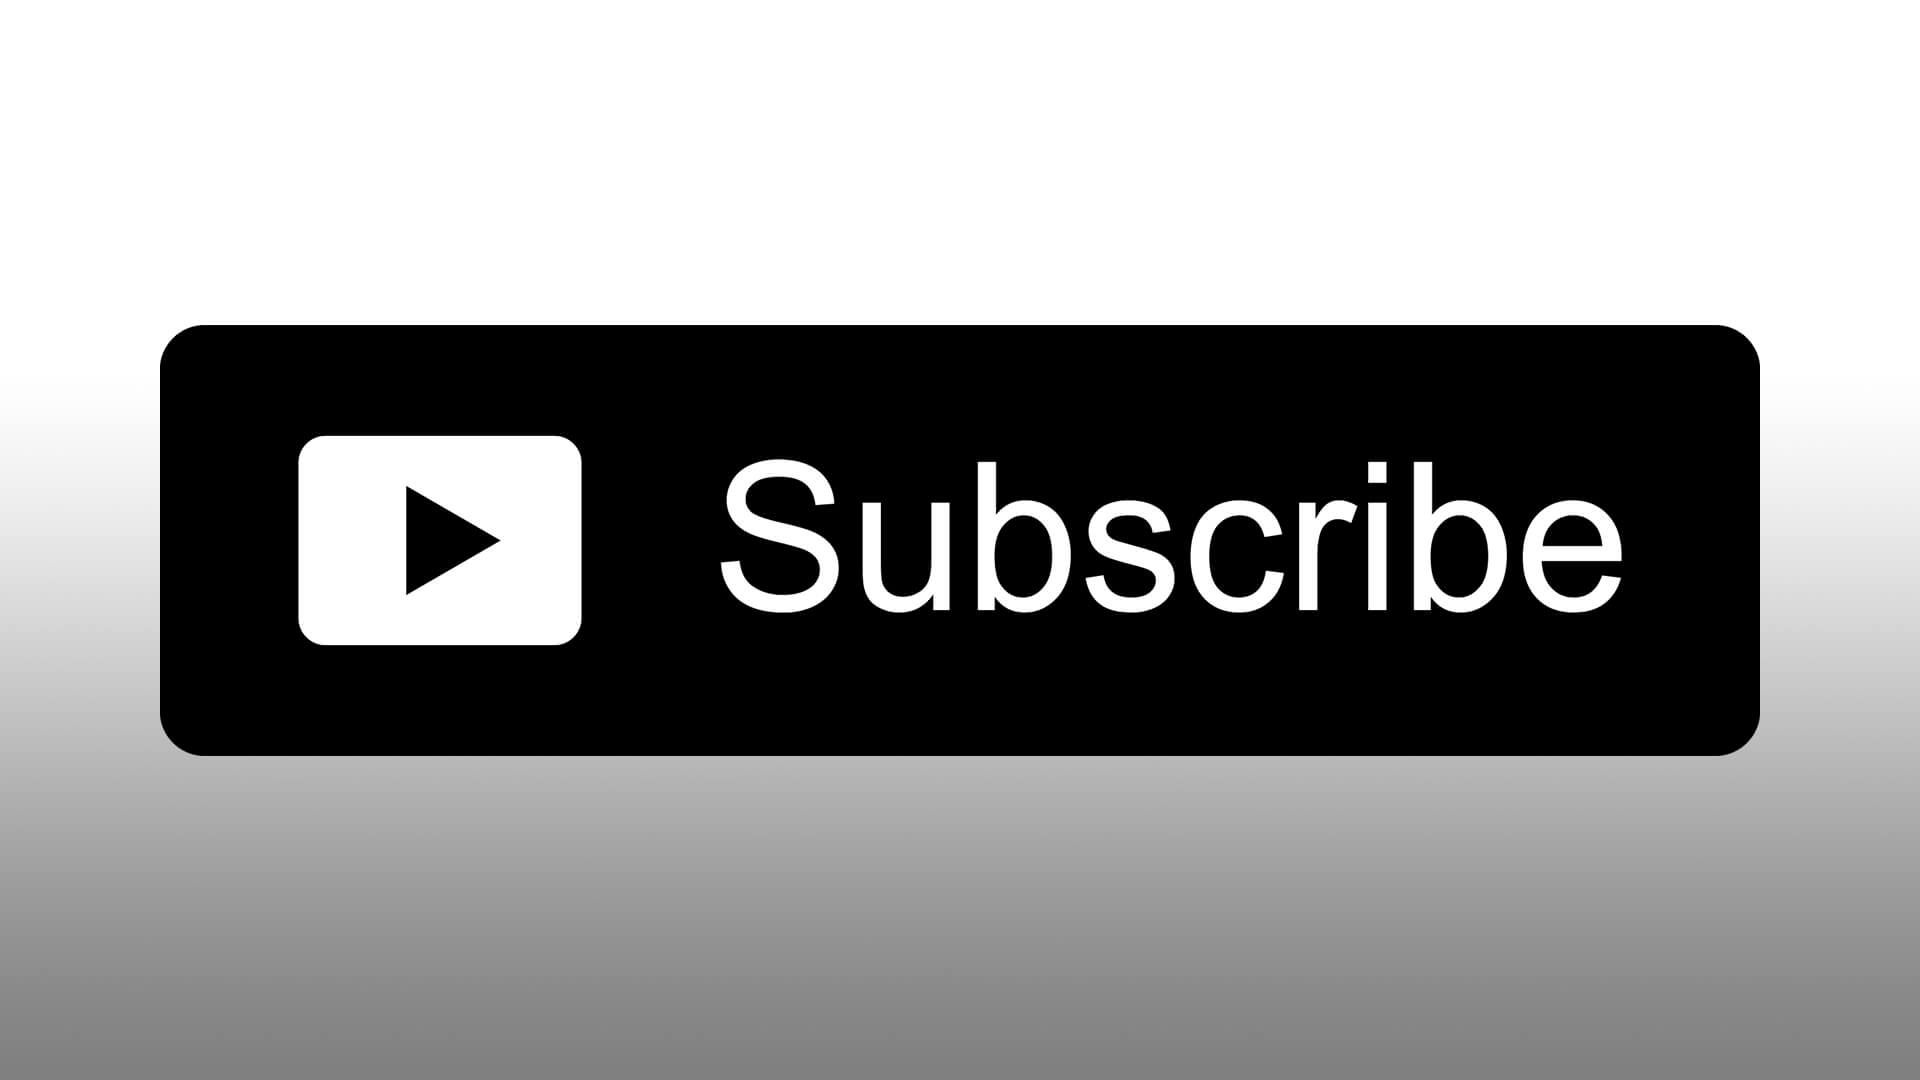 Youtube Subscribe Button Free Download 1 In 2020 With Images